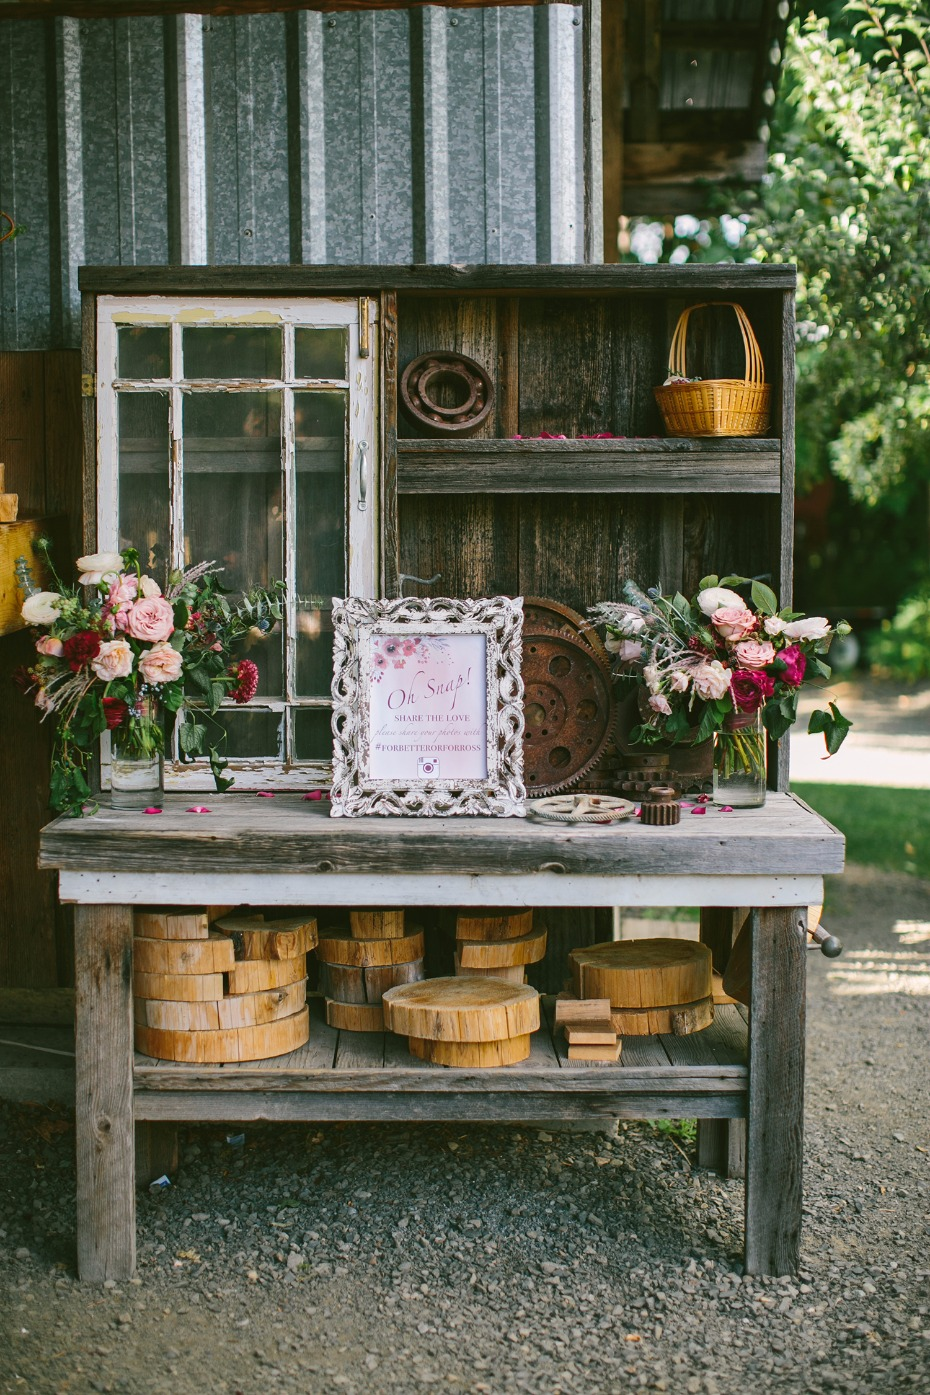 Oh snap! Rustic decor